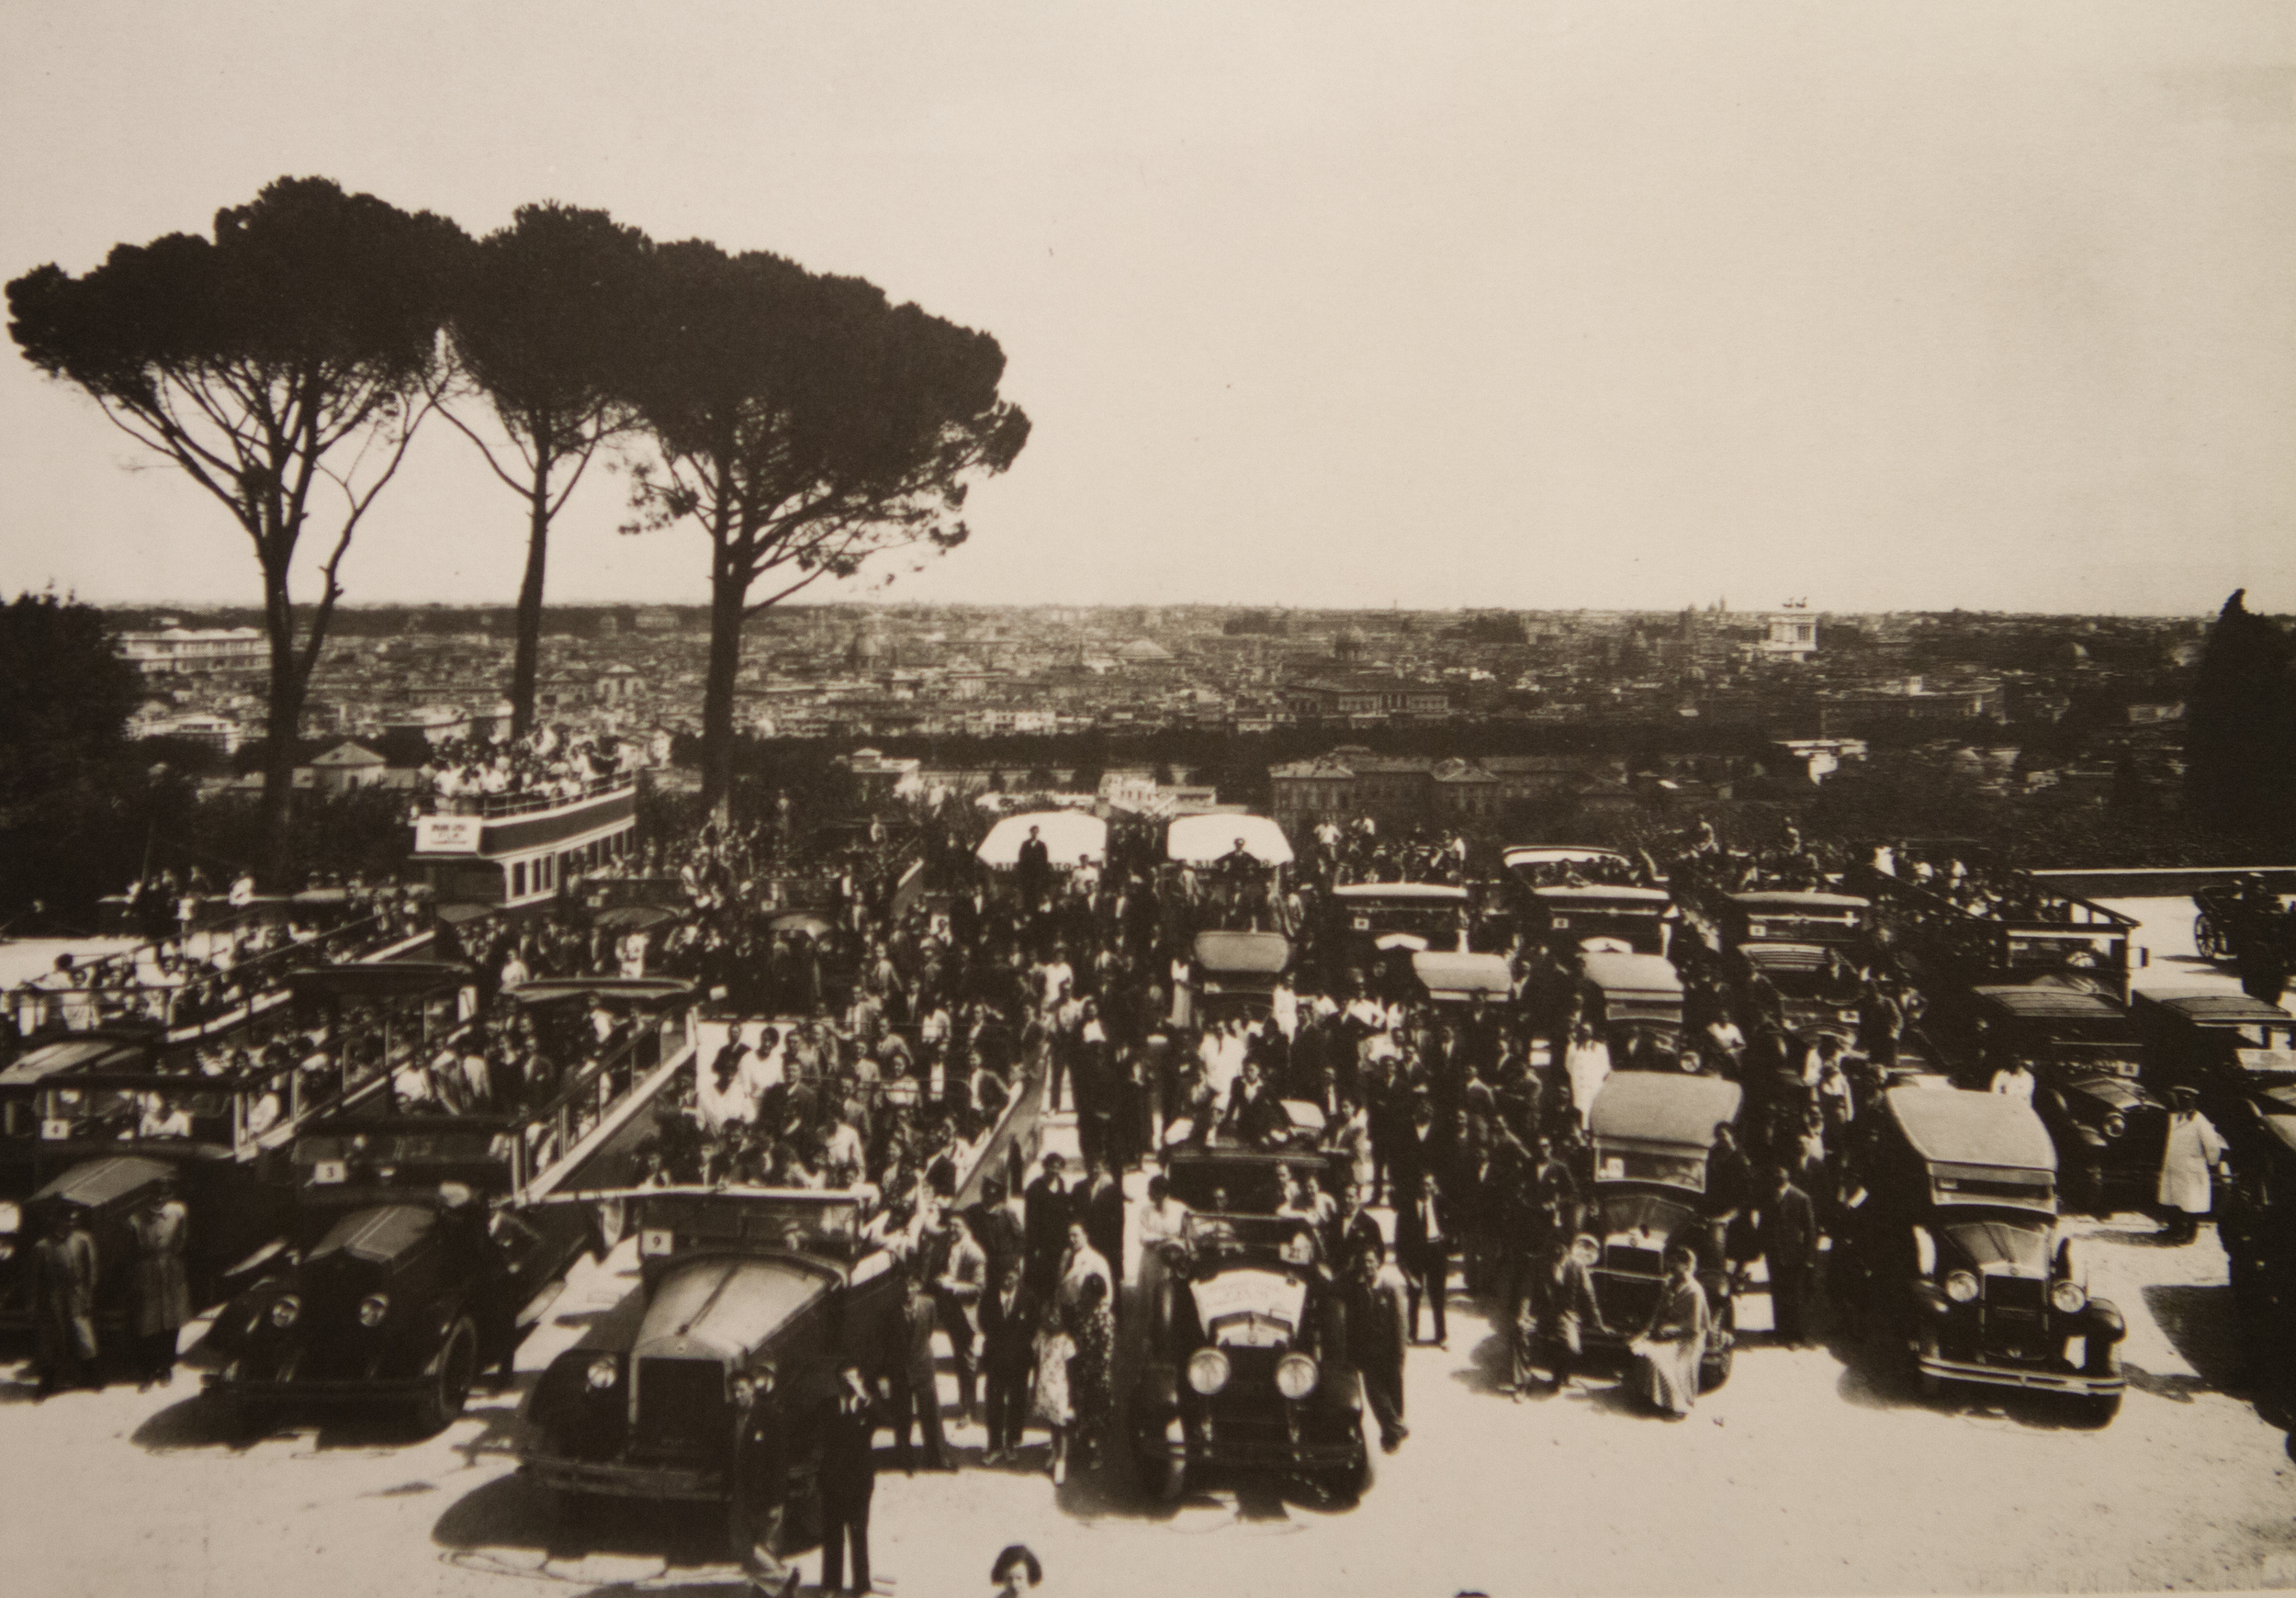 Cars for a FILM employee trip to Rome in 1933